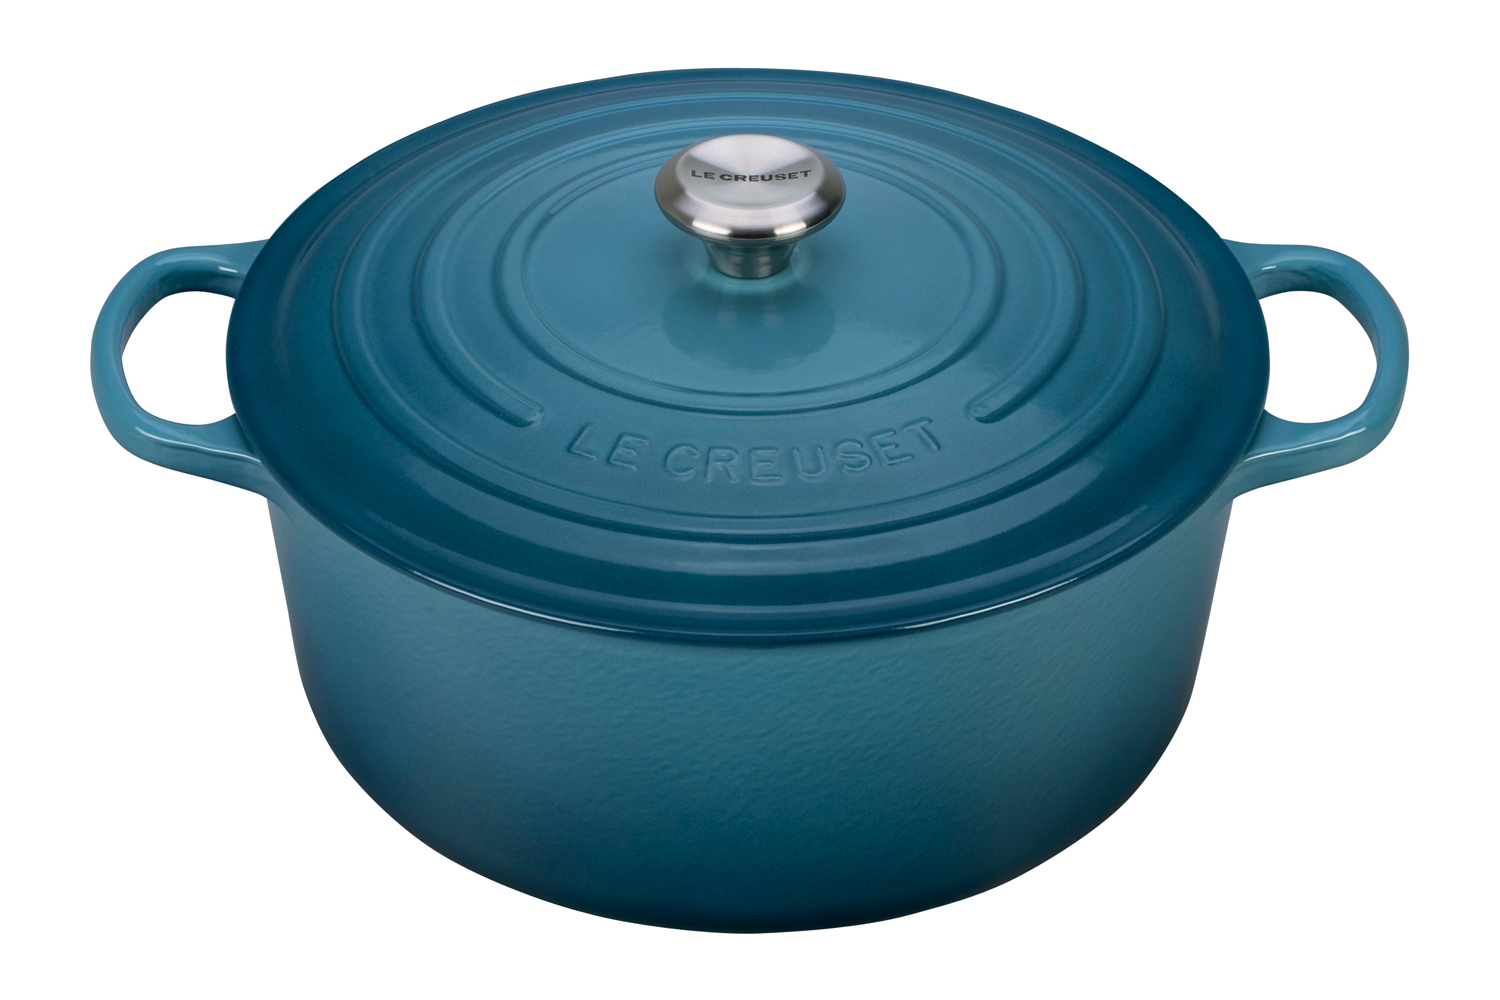 Le Creuset Signature Cast Iron Marine Round Dutch Ovens